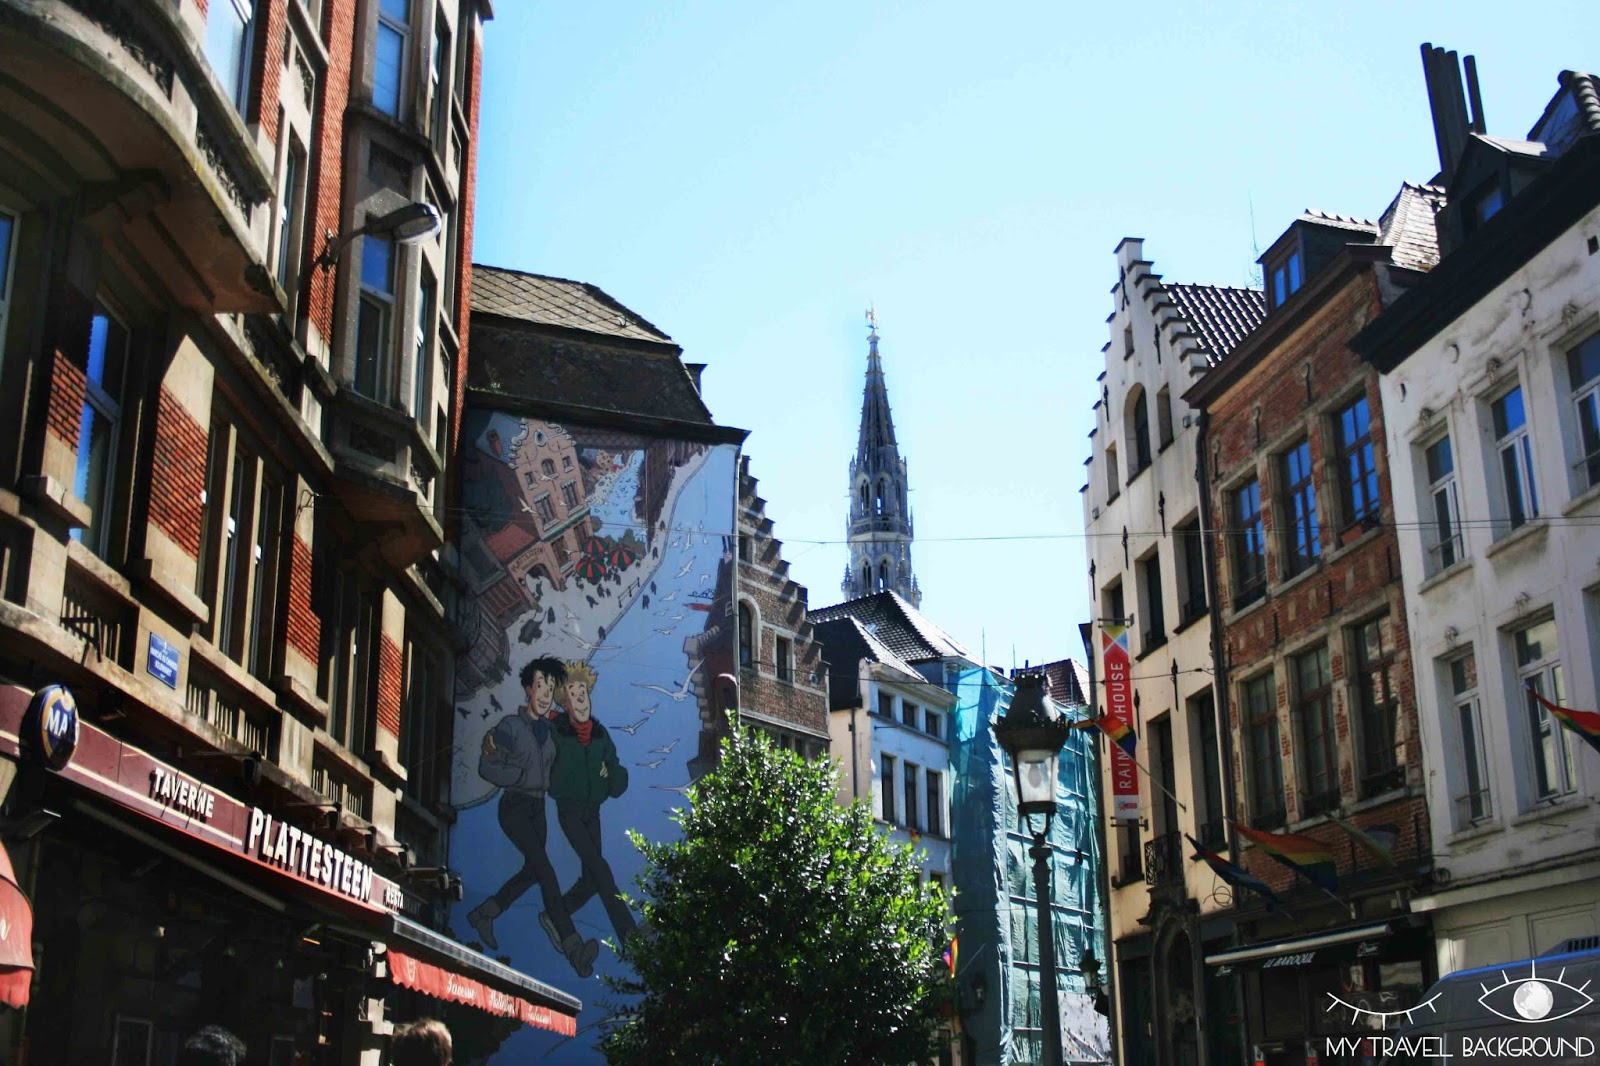 My Travel Background : Cartes Postale Belgique - Bruxelles